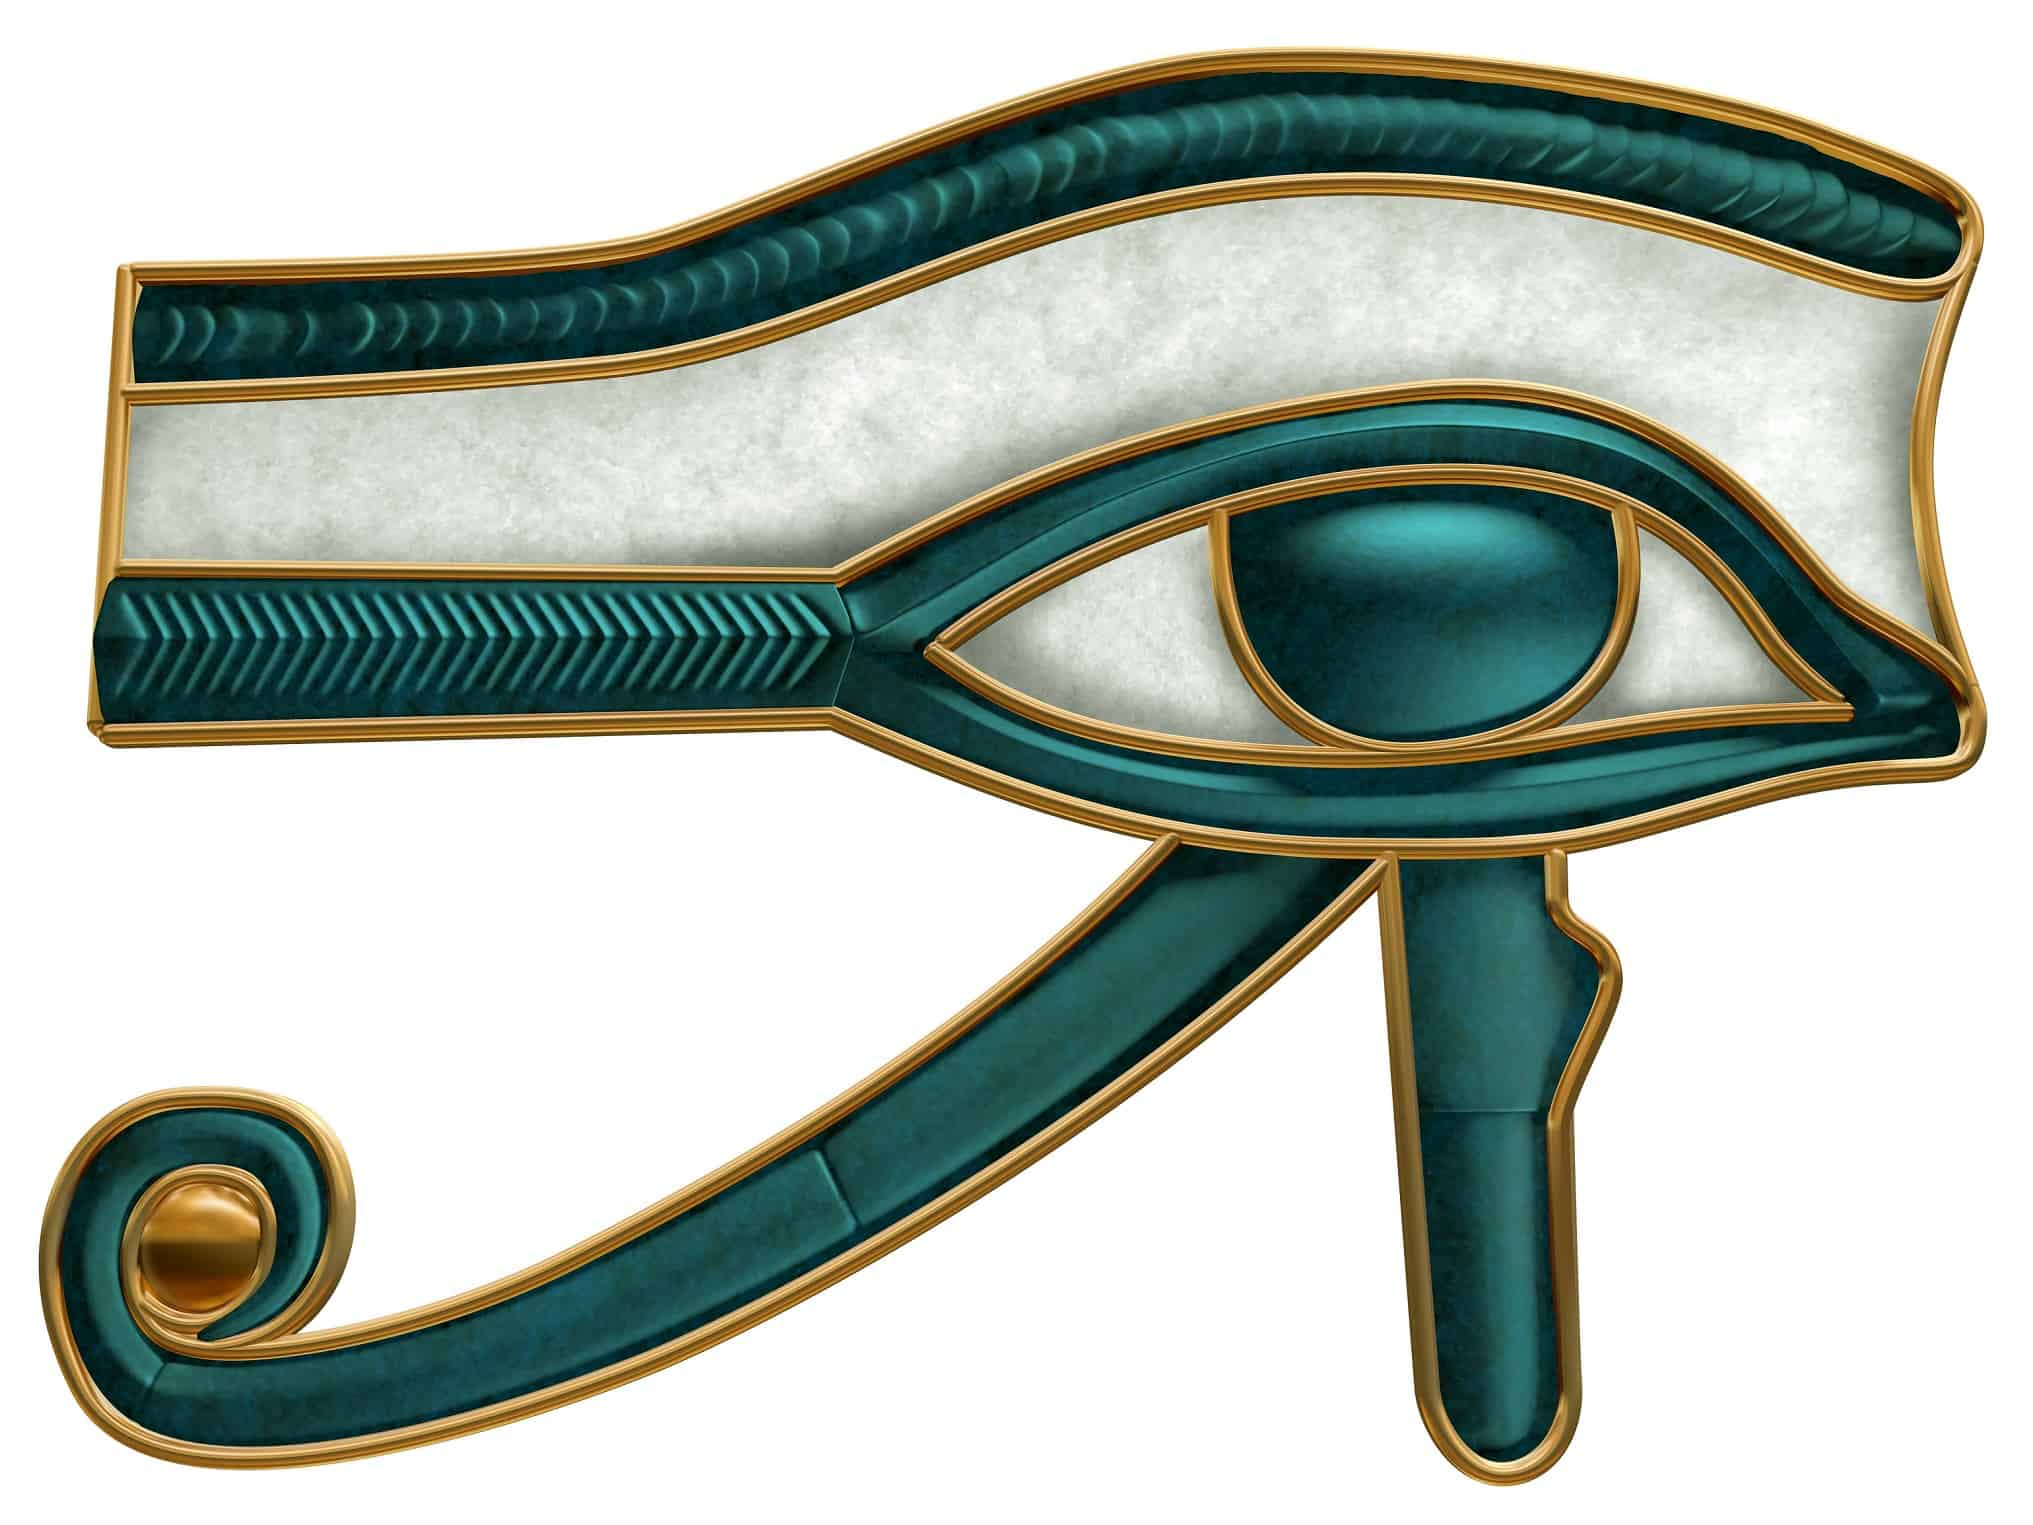 Eye of Ra Meaning, Symbolism and Origin, Eye of Ra and Eye of Horus Compared